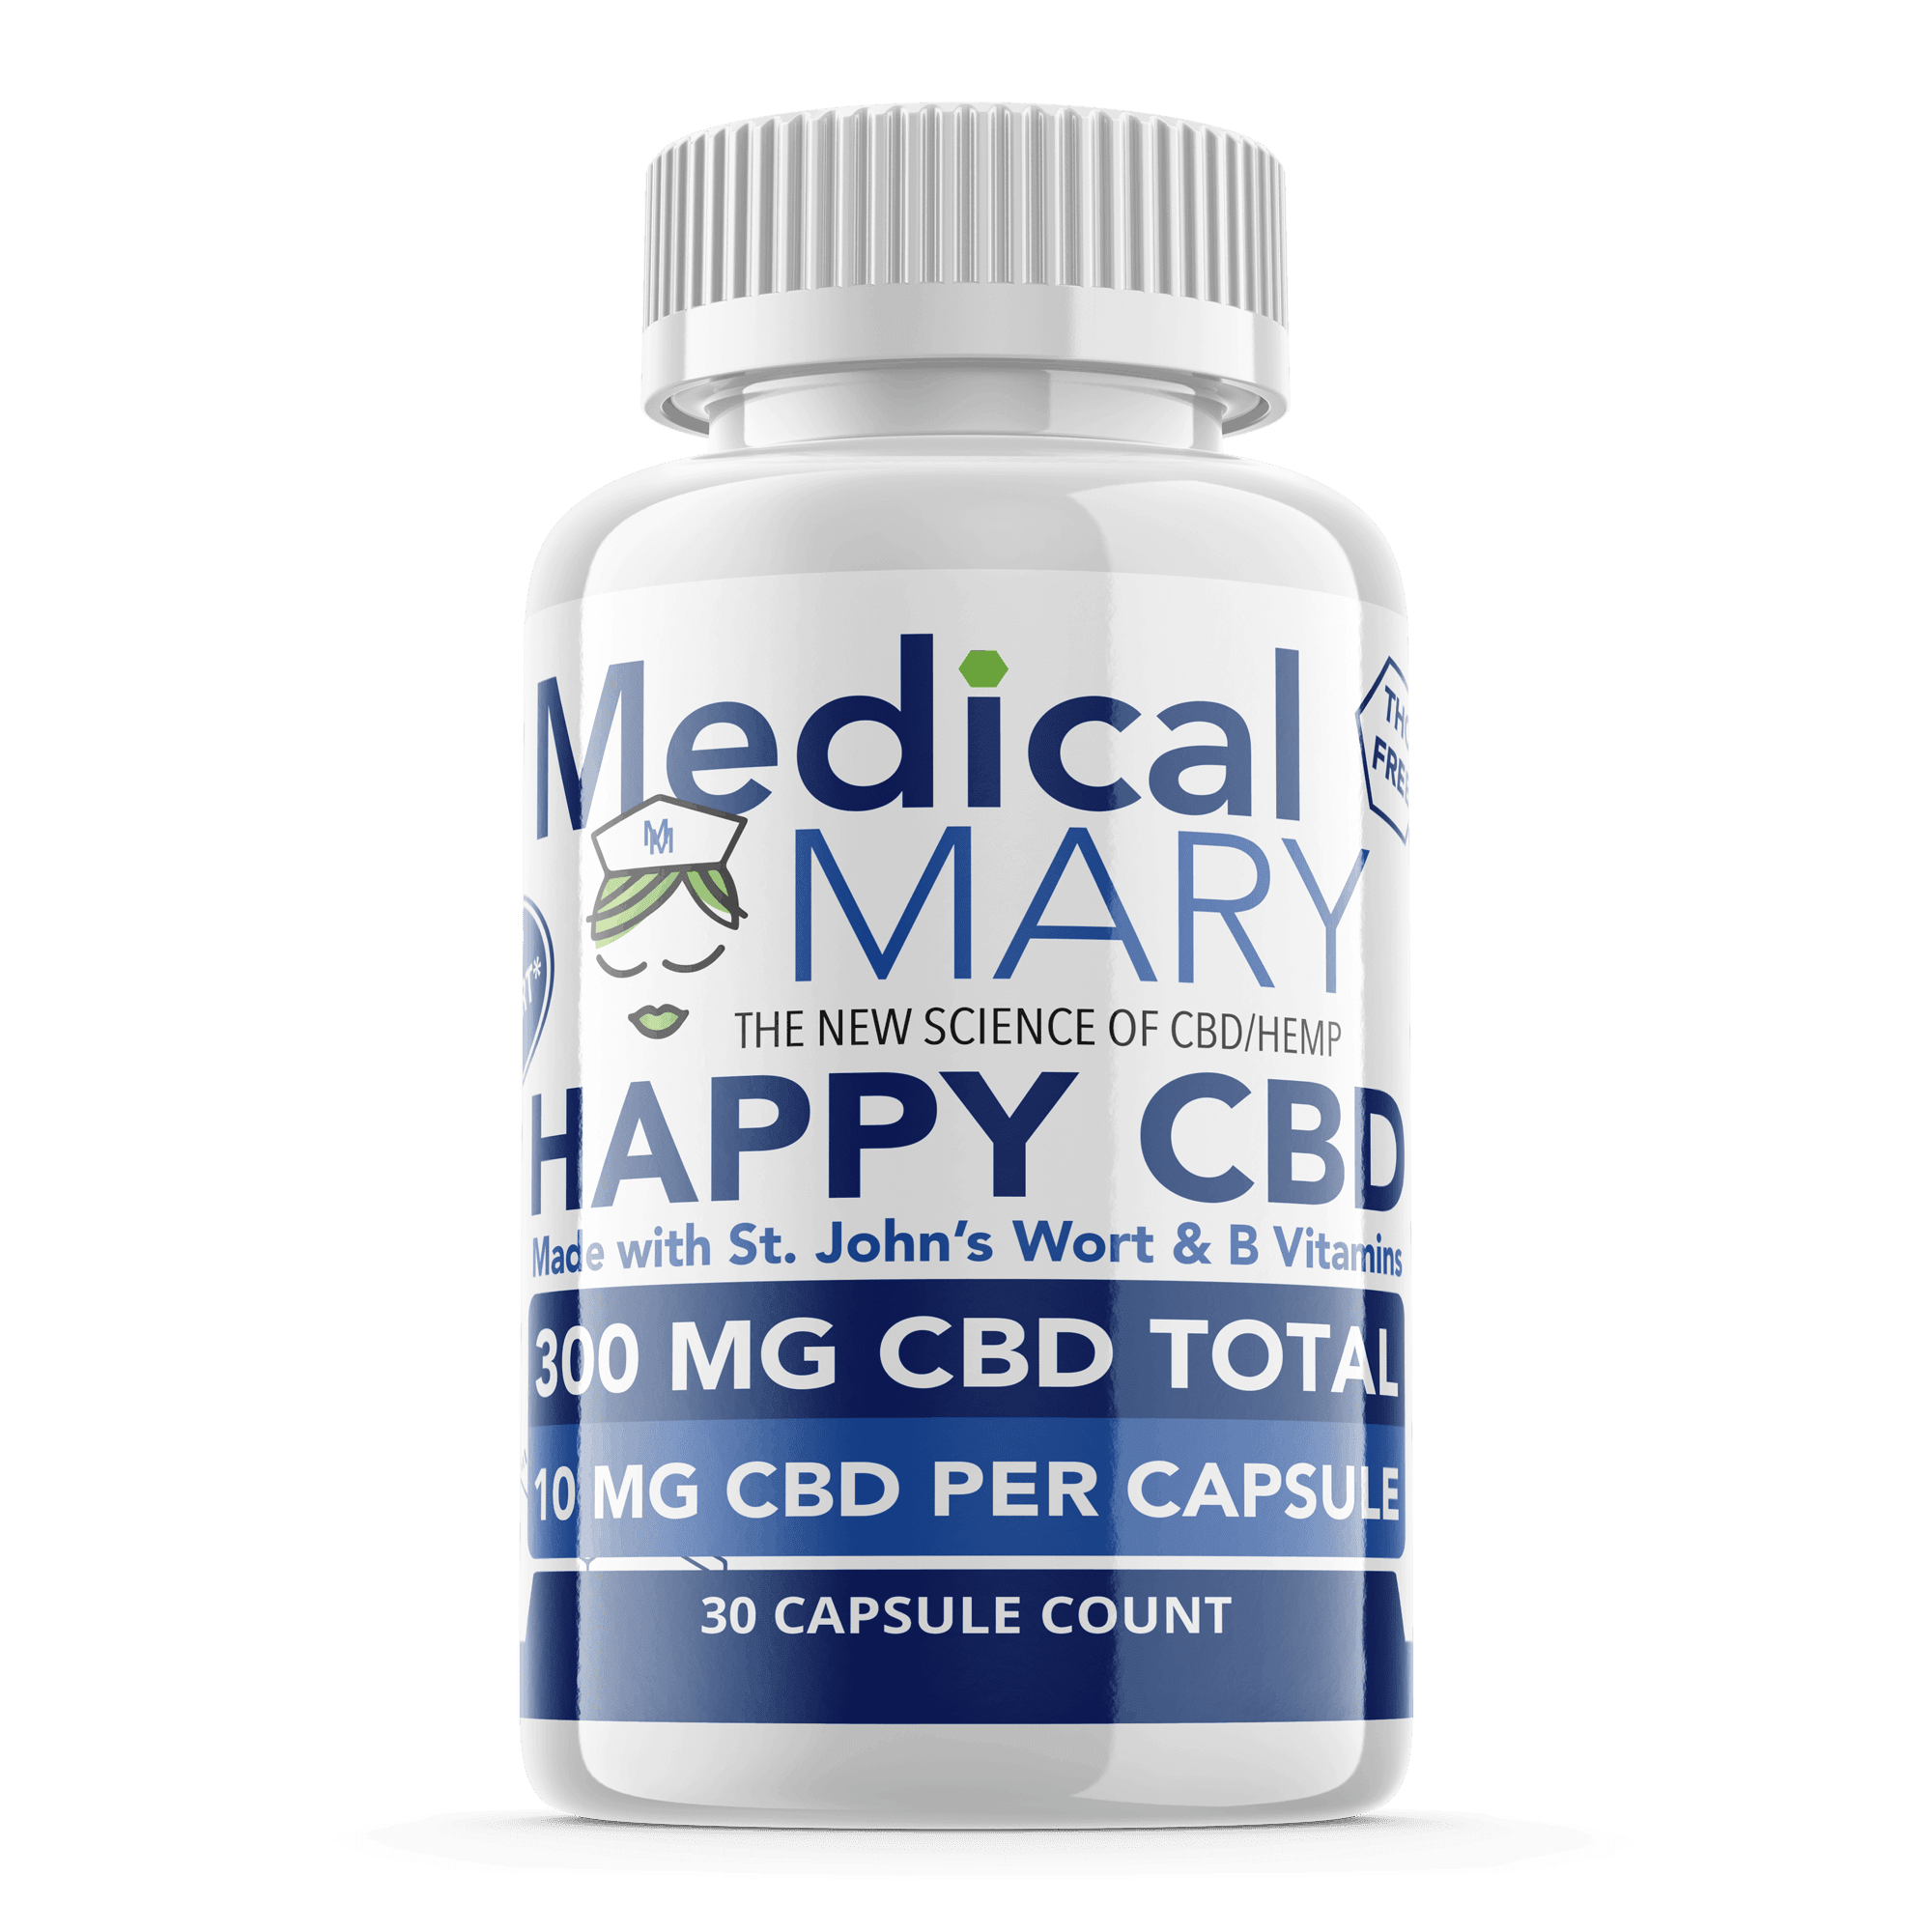 Best CBD Capsules for mood